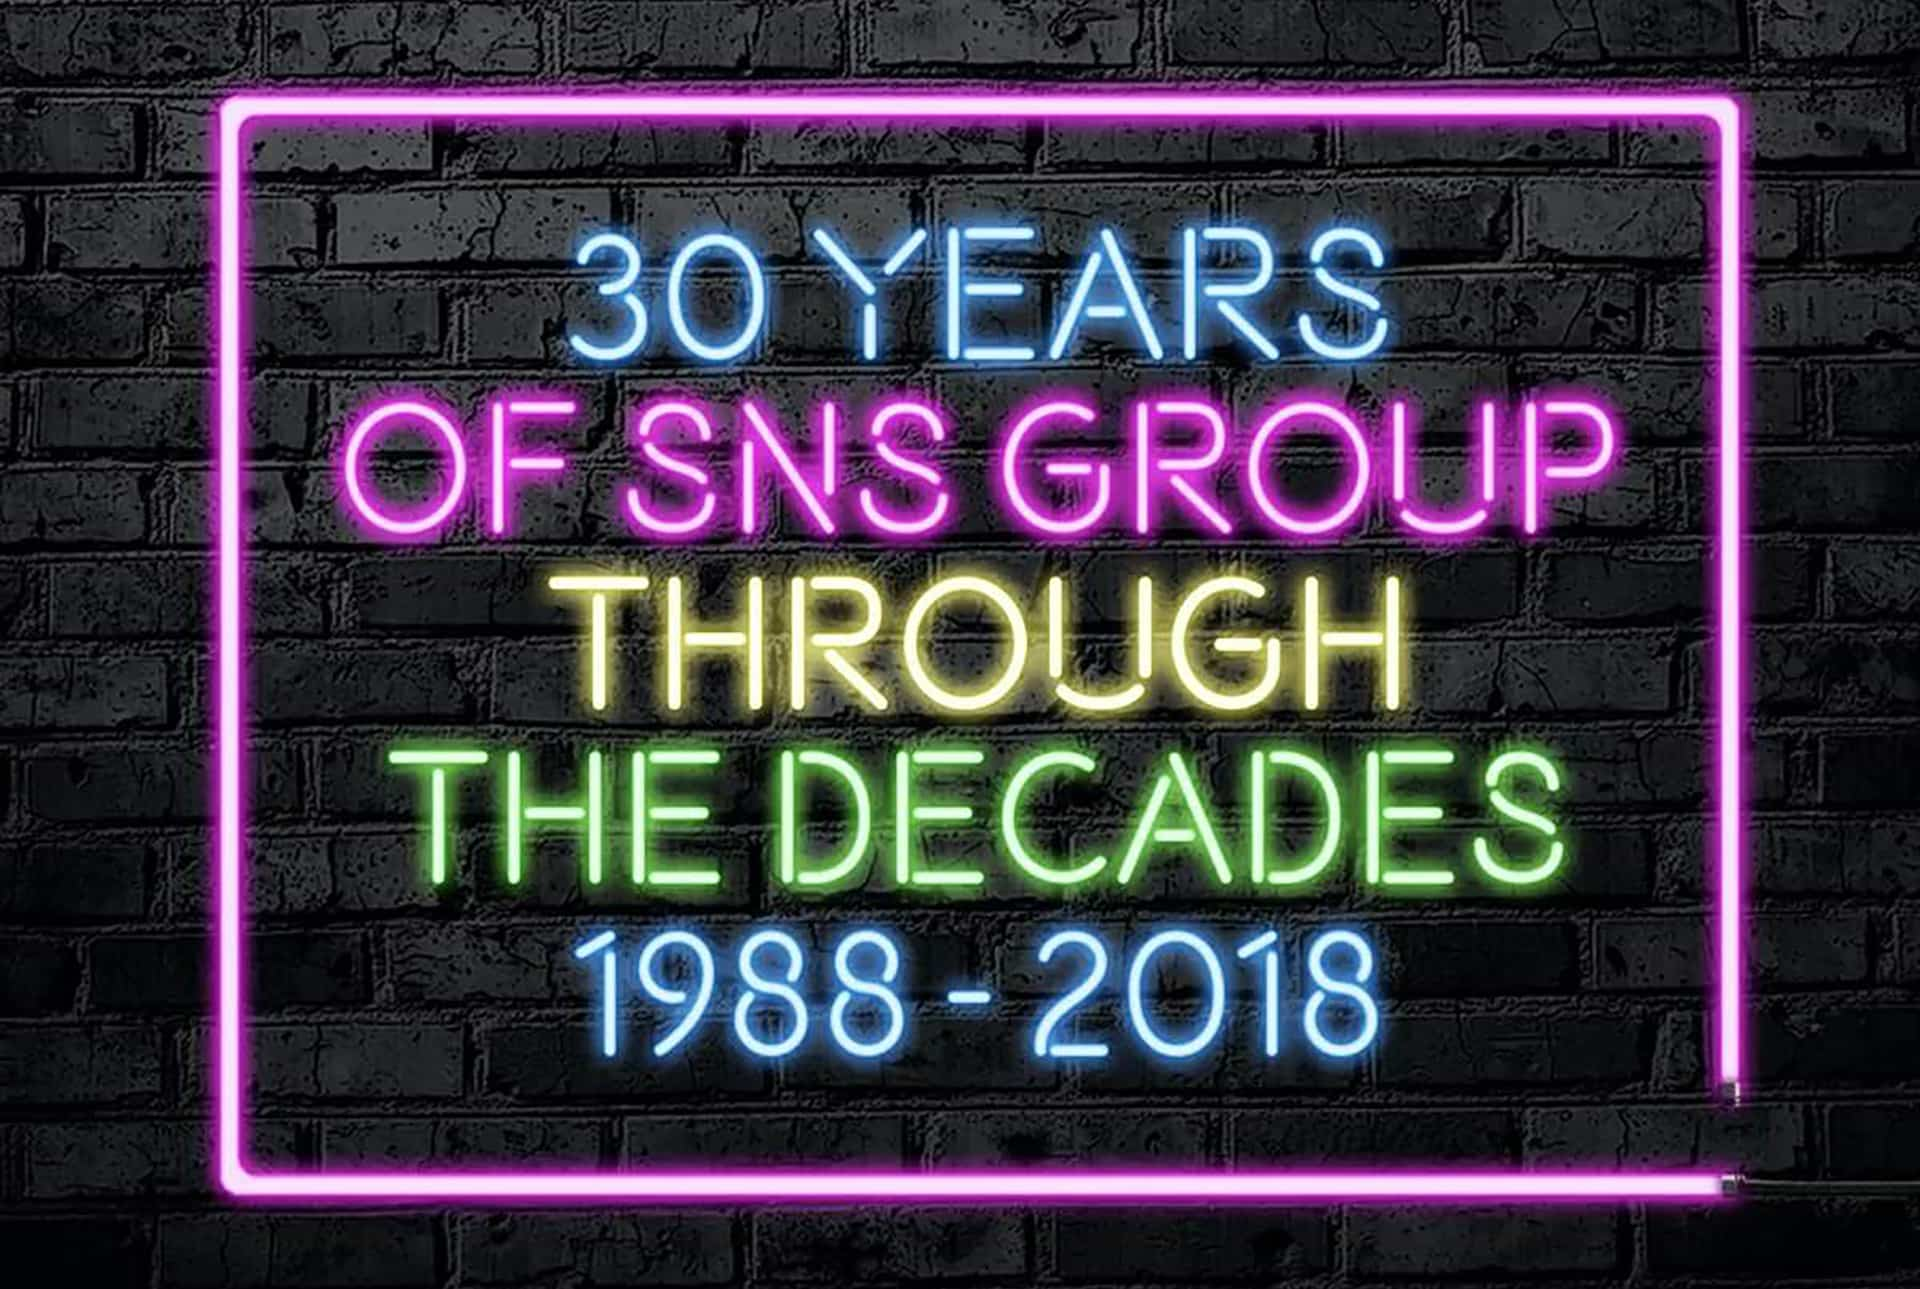 30 years of sns group through the decades 1988 - 2018